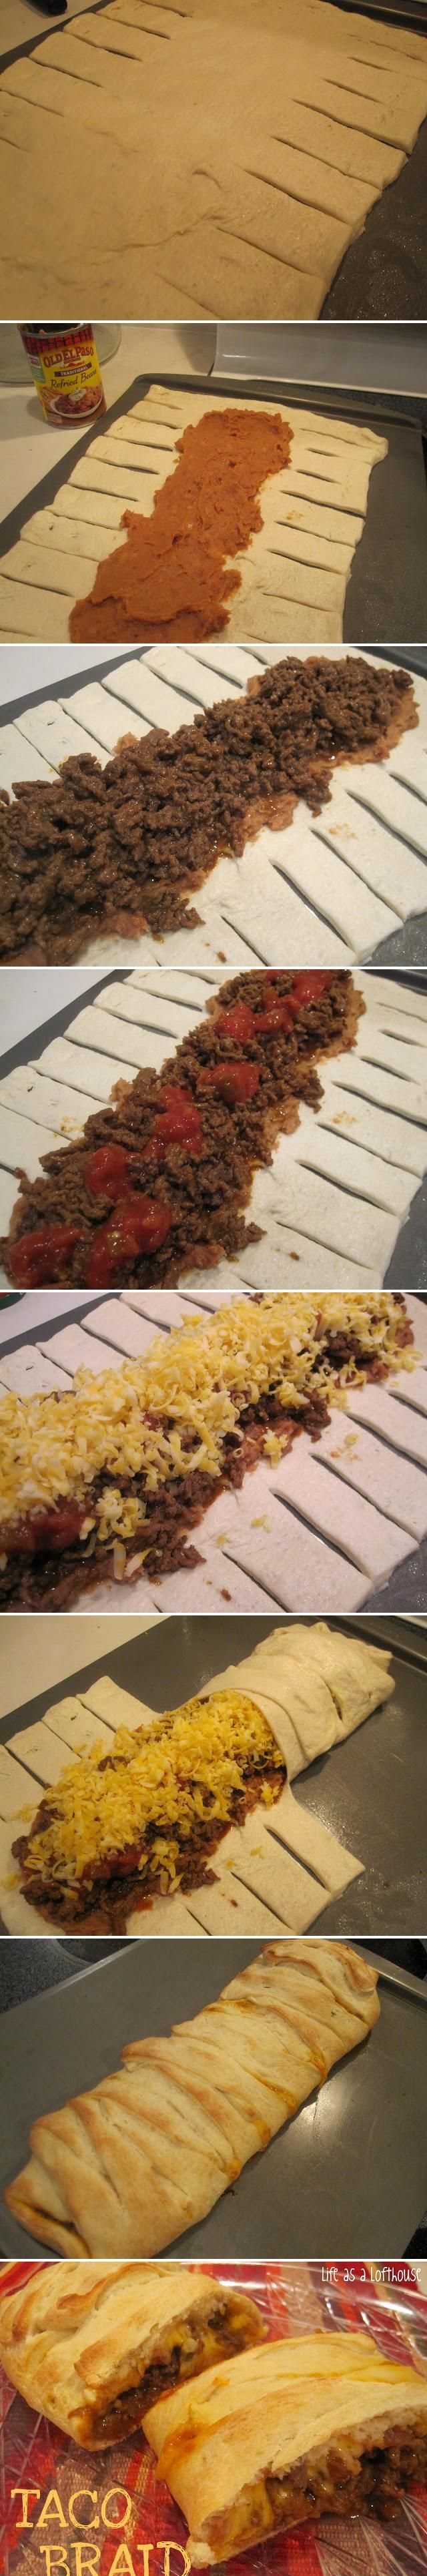 Ever heard of a braid? Here's a taco braid with step-by-step instructions. Quick and easy using Pillsbury Pizza Dough! Click for step-by-step-instructions.